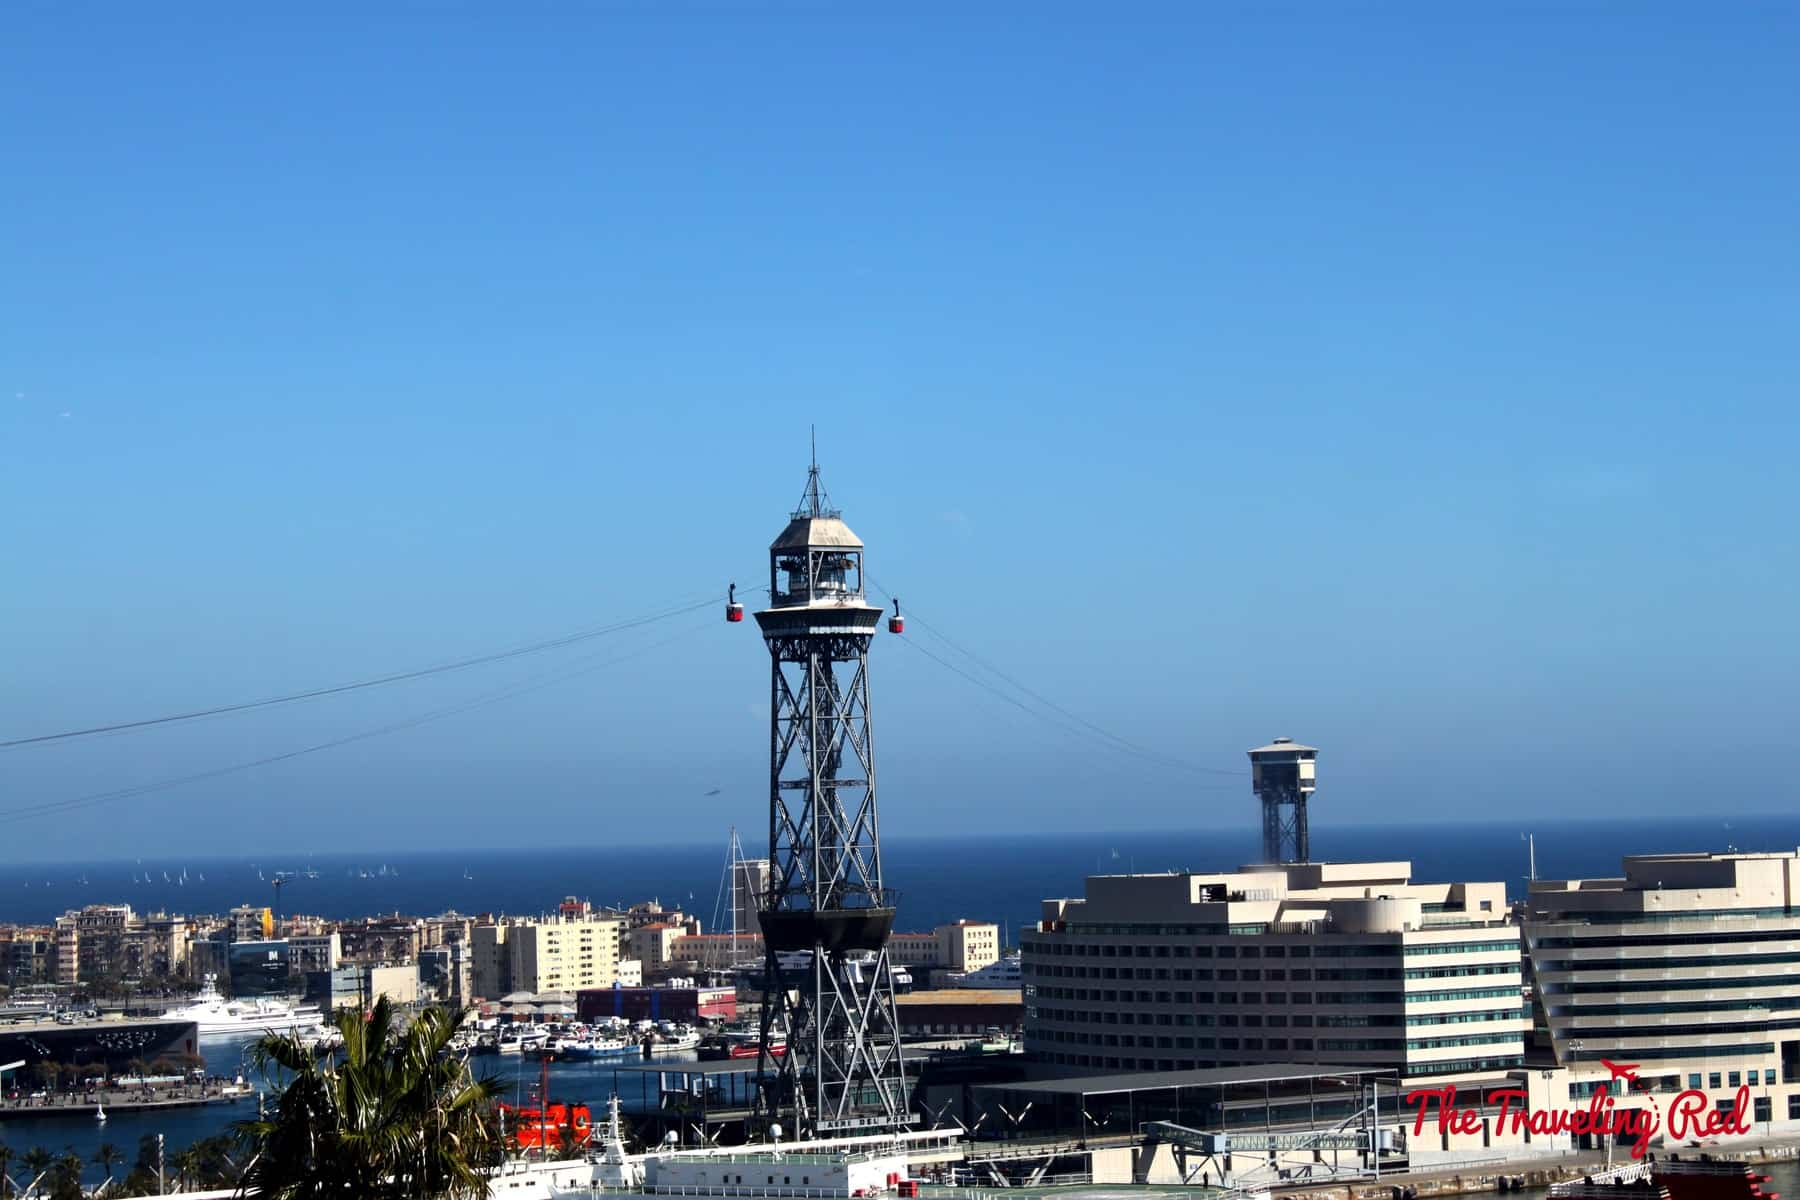 View of the Teleferic,a cable car that takes you up to Montjuic, from Restaurante Martinez in Barcelona, Spain.